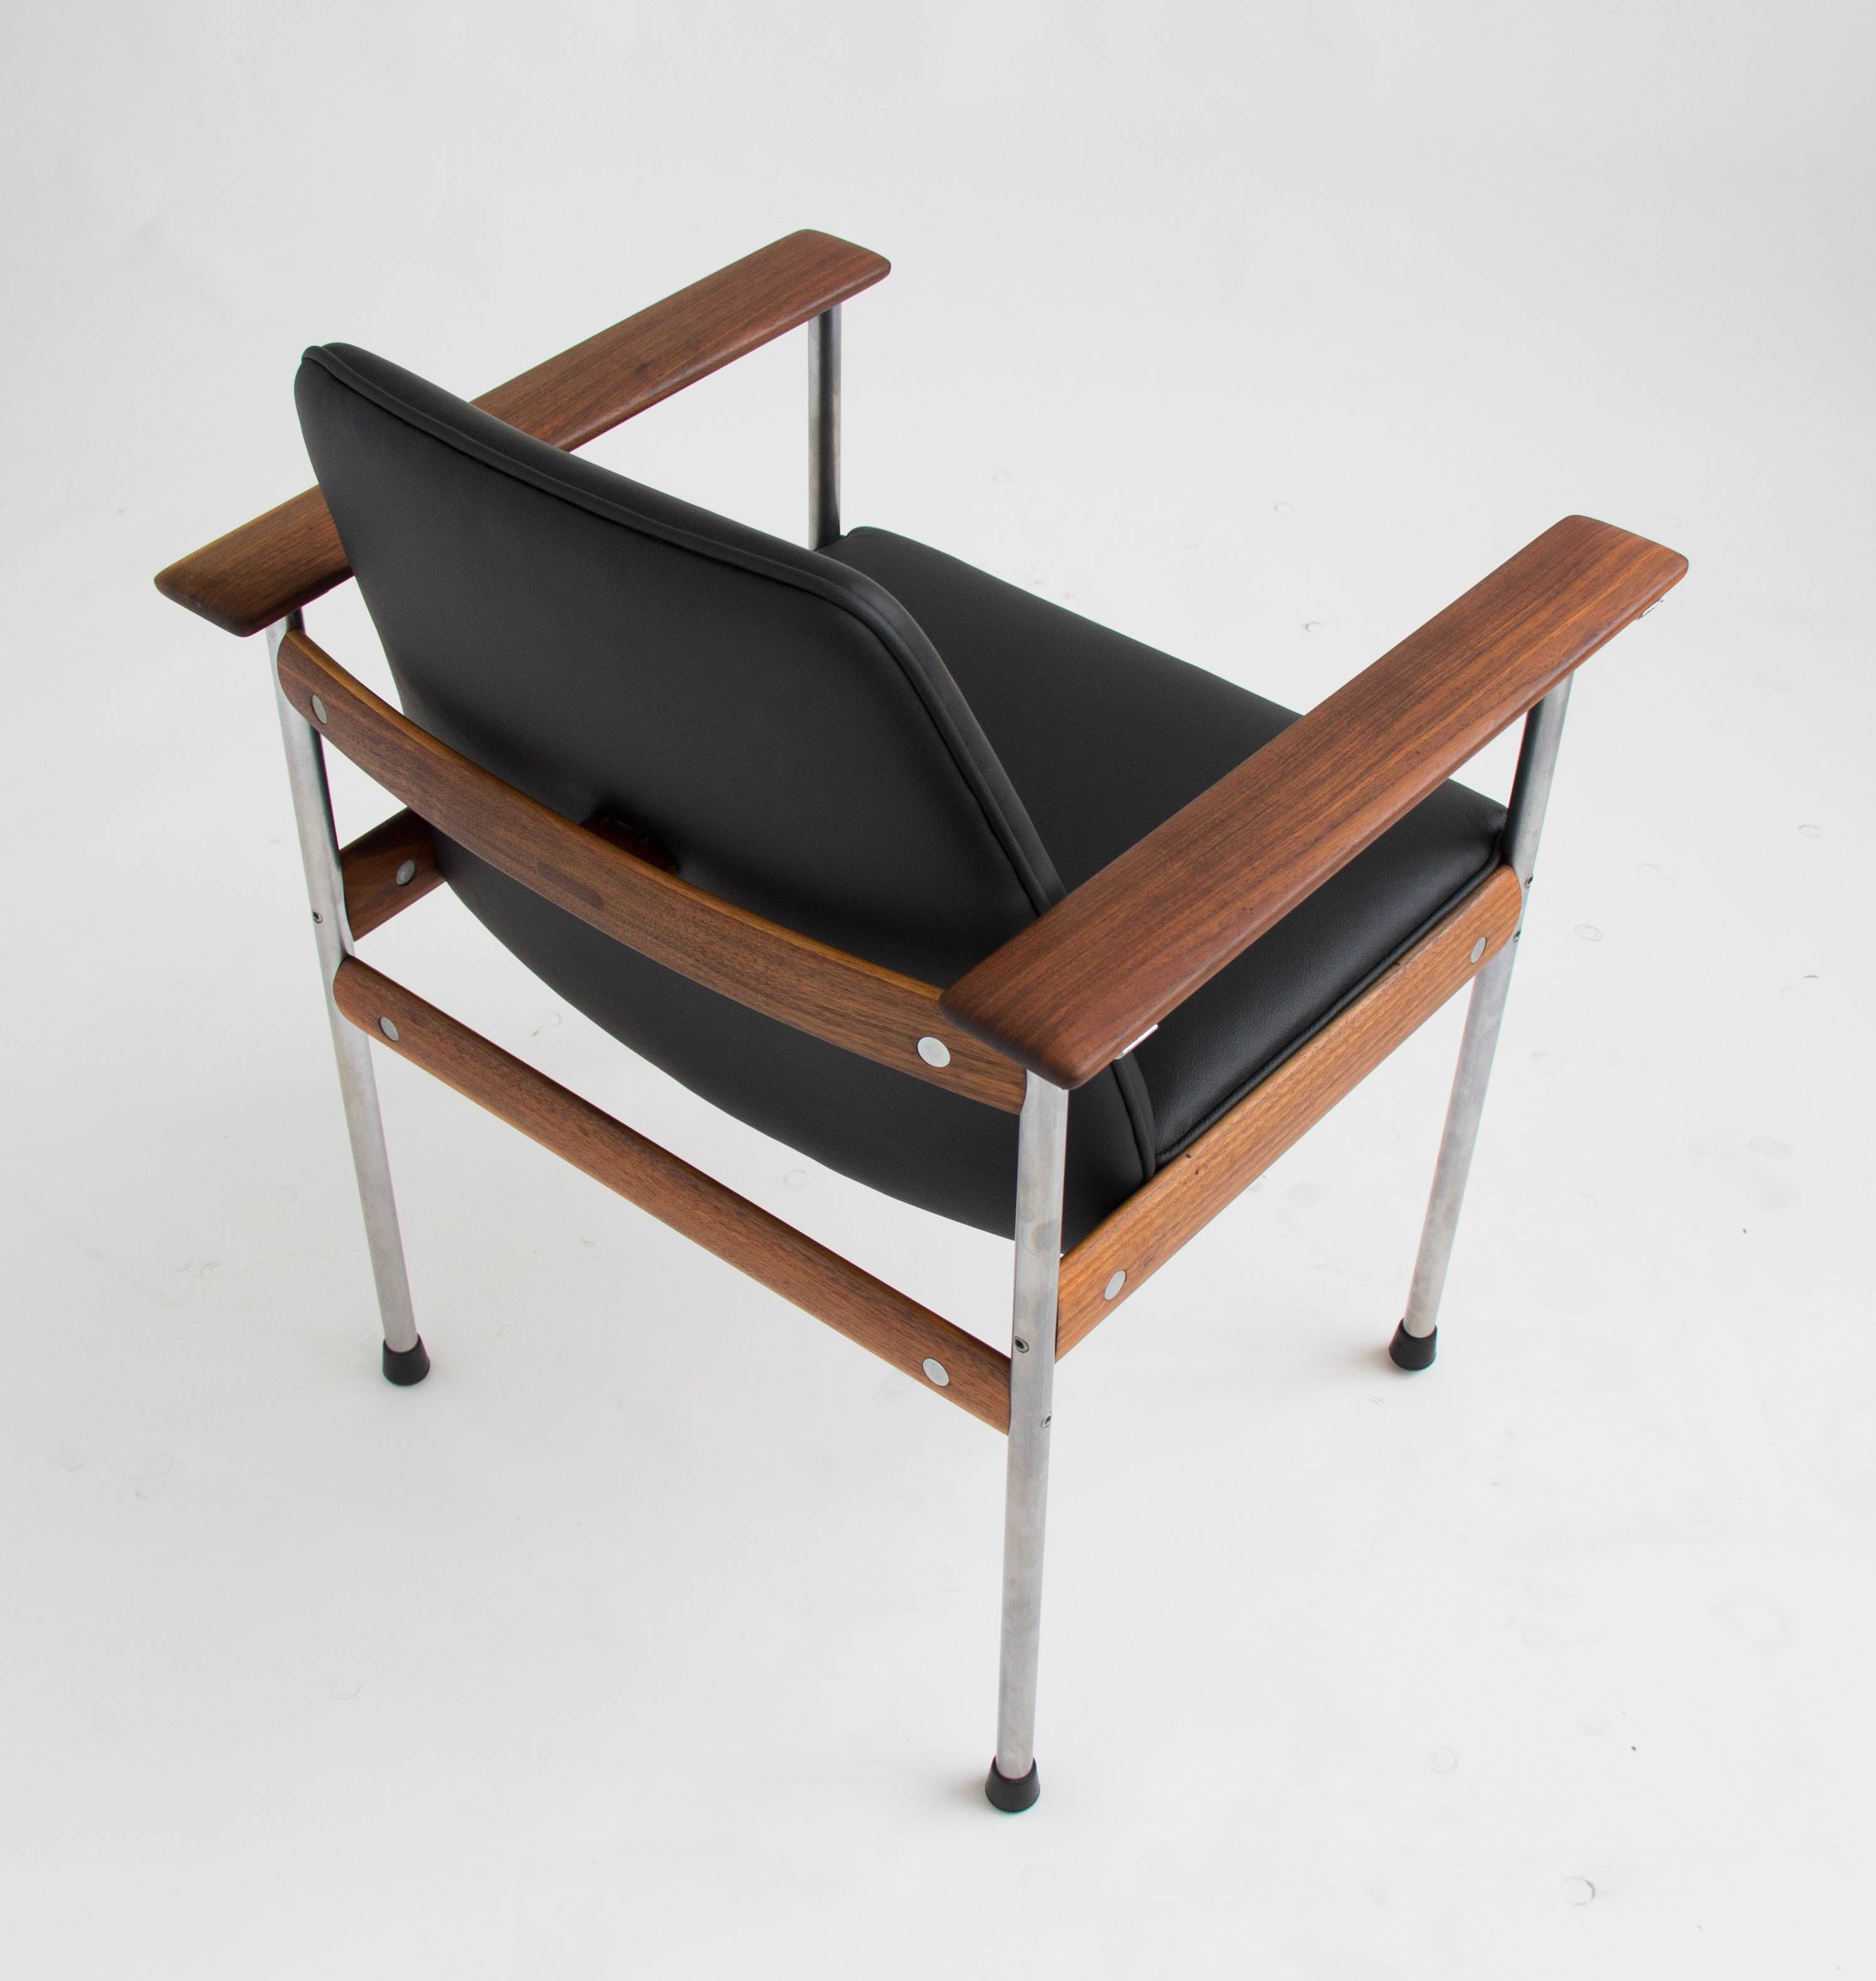 Set of Six Teak and Leather Dining Chairs by Sven Ivar Dysthe